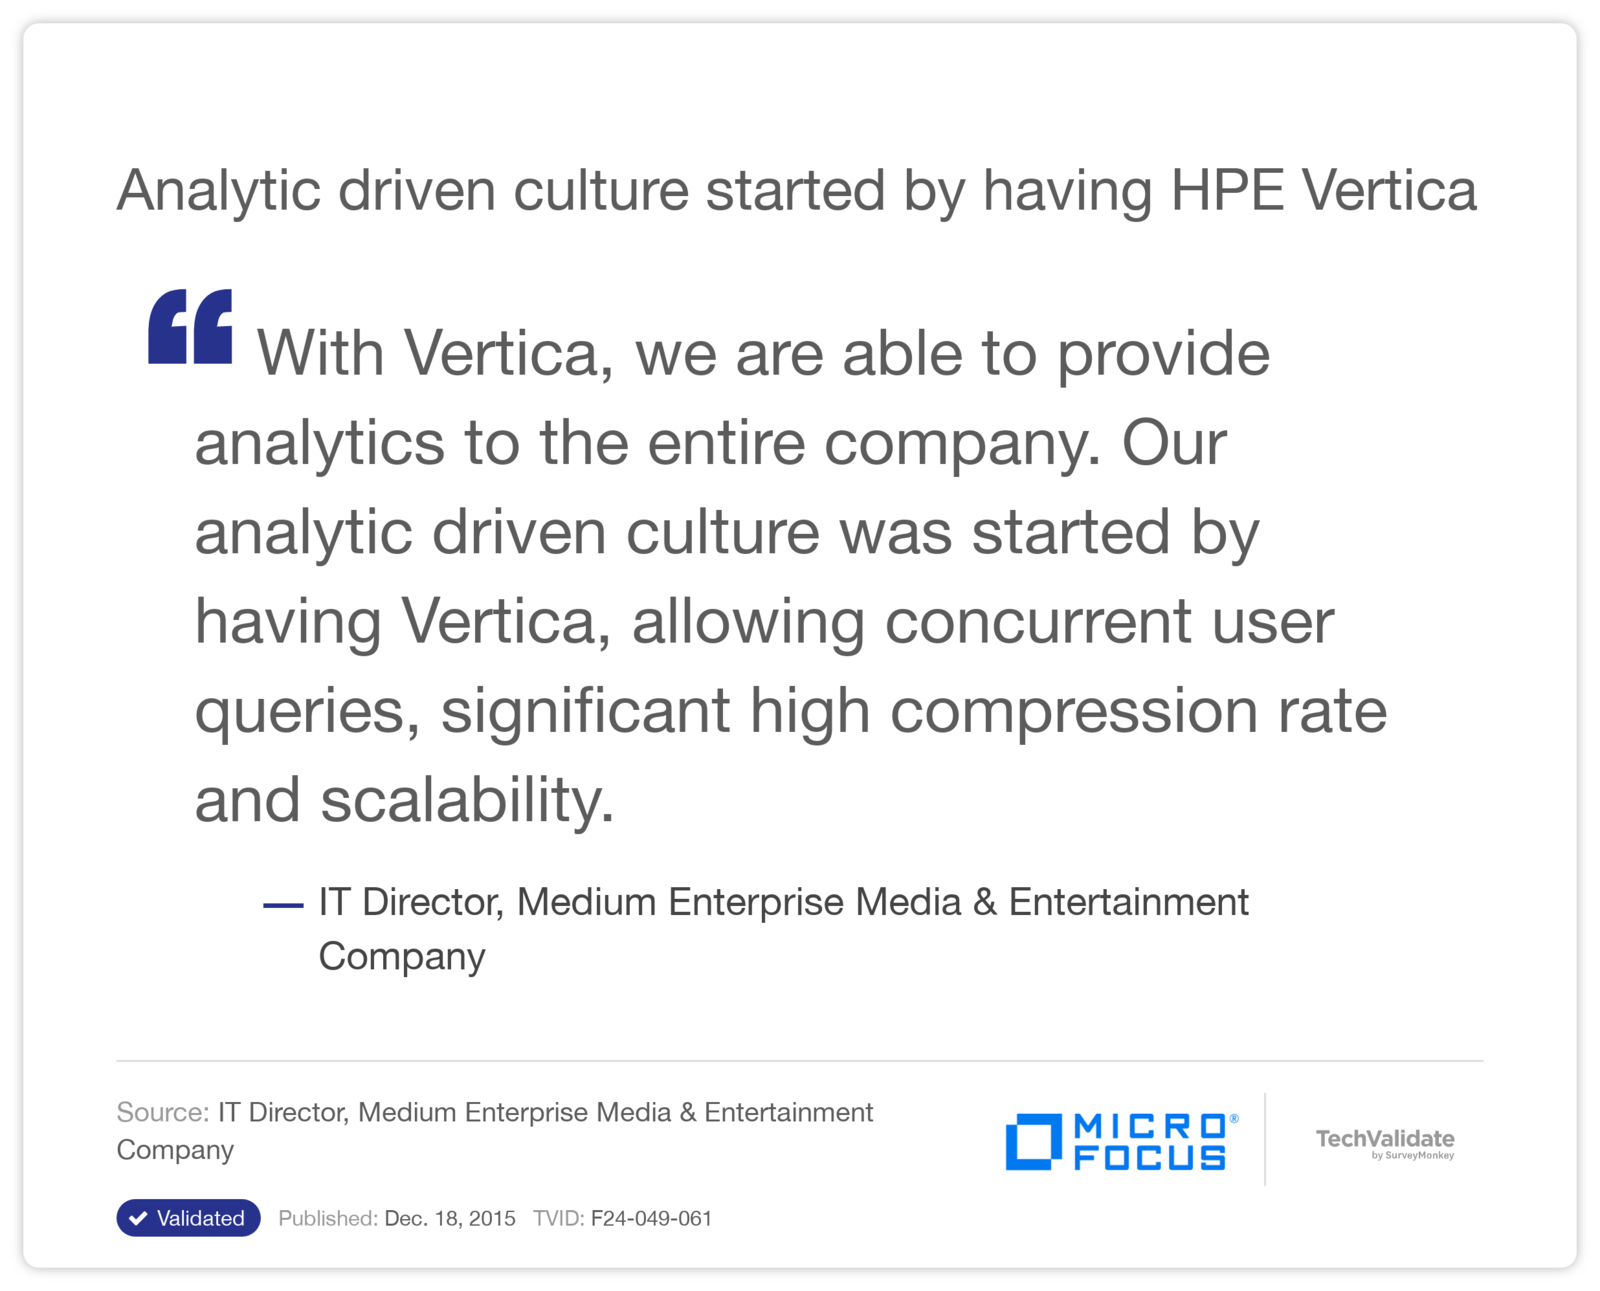 Analytic driven culture started by having HPE Vertica